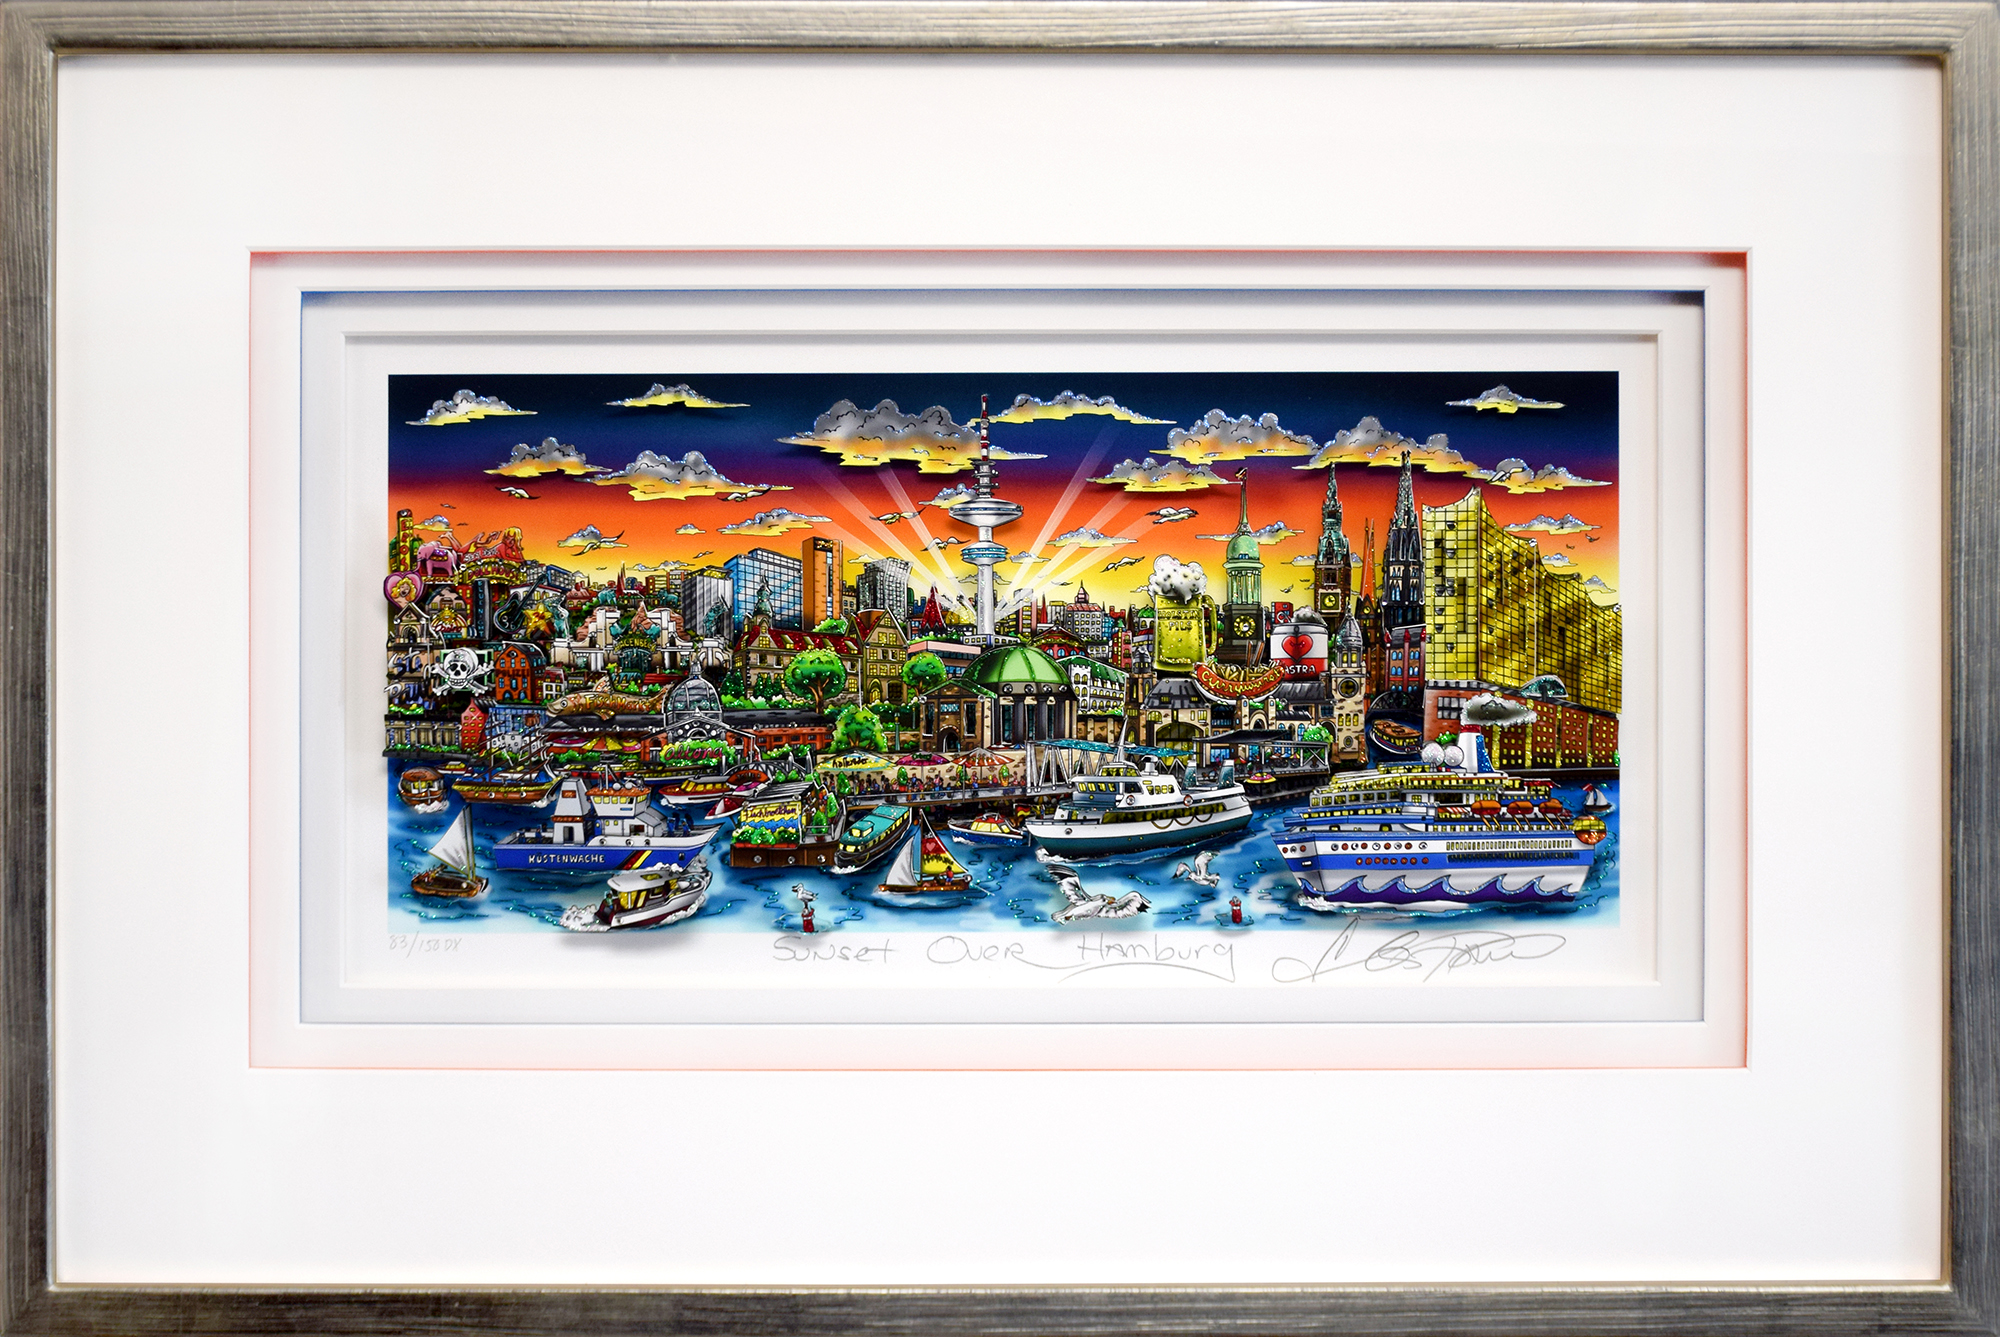 Charles Fazzino - Sunset over Hamburg , 5552-008-954 , 5553-008-007-008-015-032-043-052-059